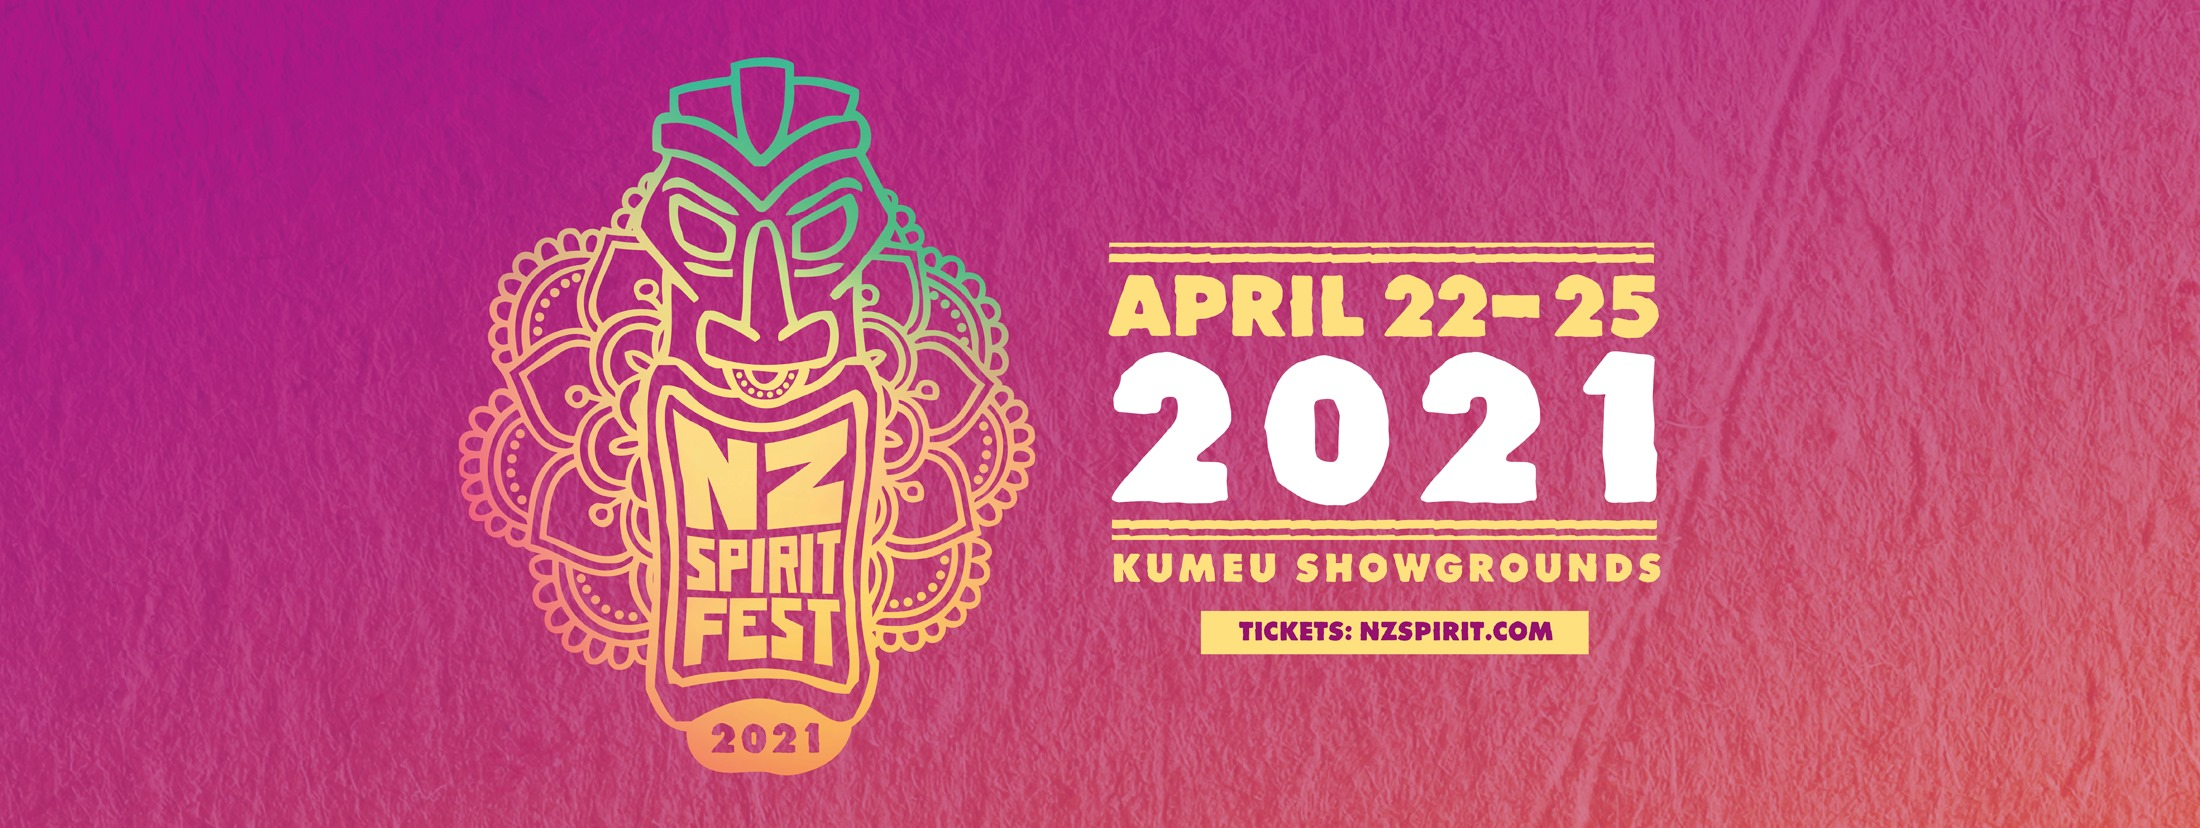 NZ Spirit Festival – April 22-25, 2021 – Auckland